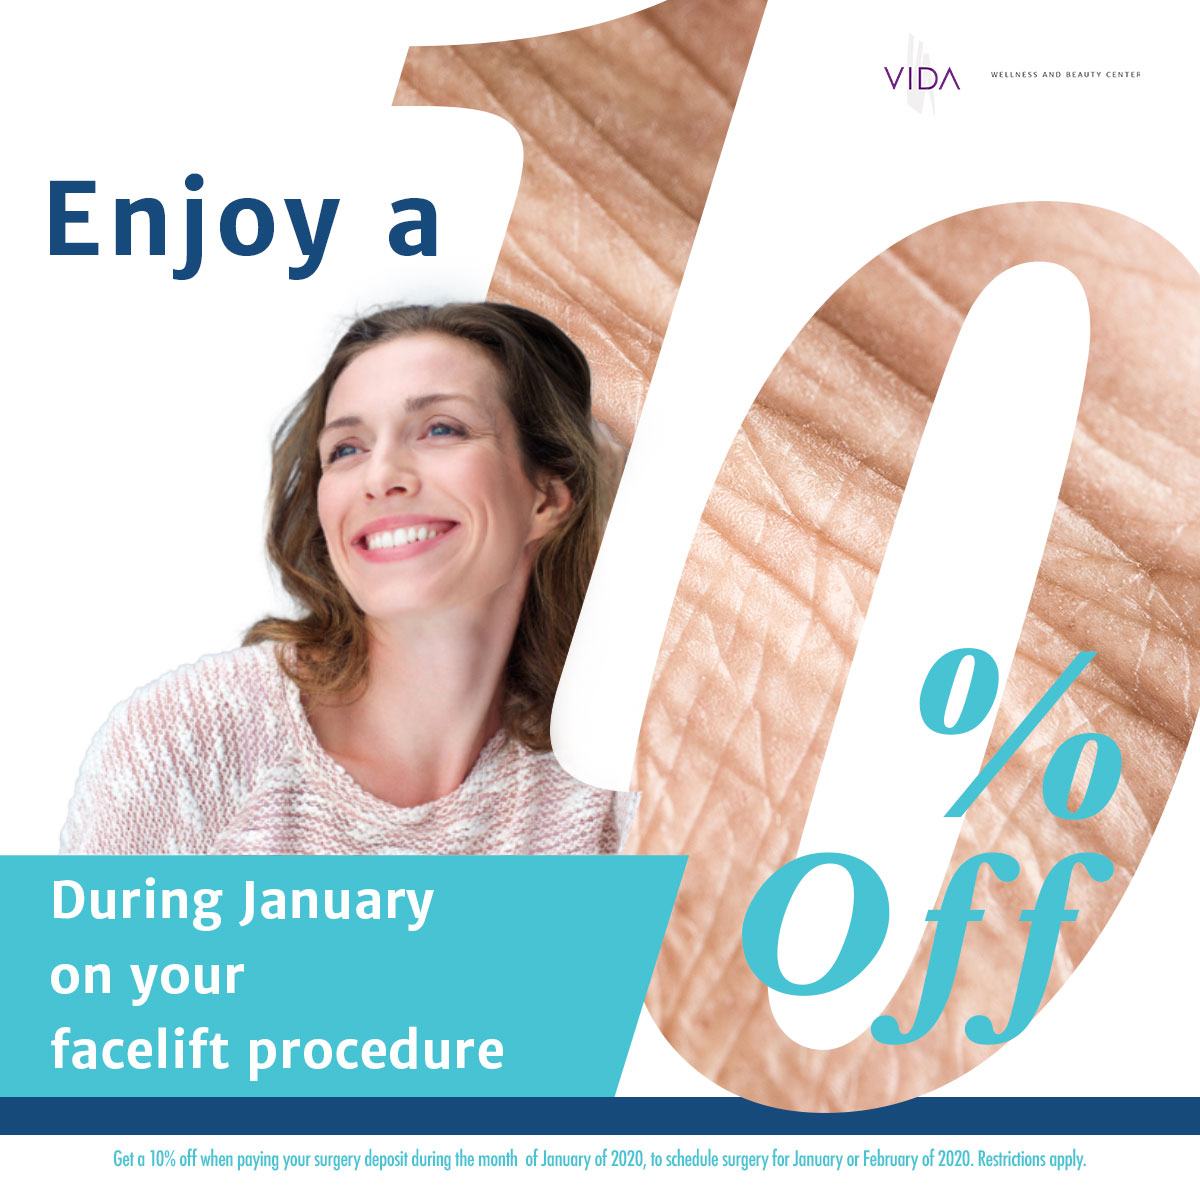 Facelift Procedure Promotion Face Beauty Surgery VIDA COSMED